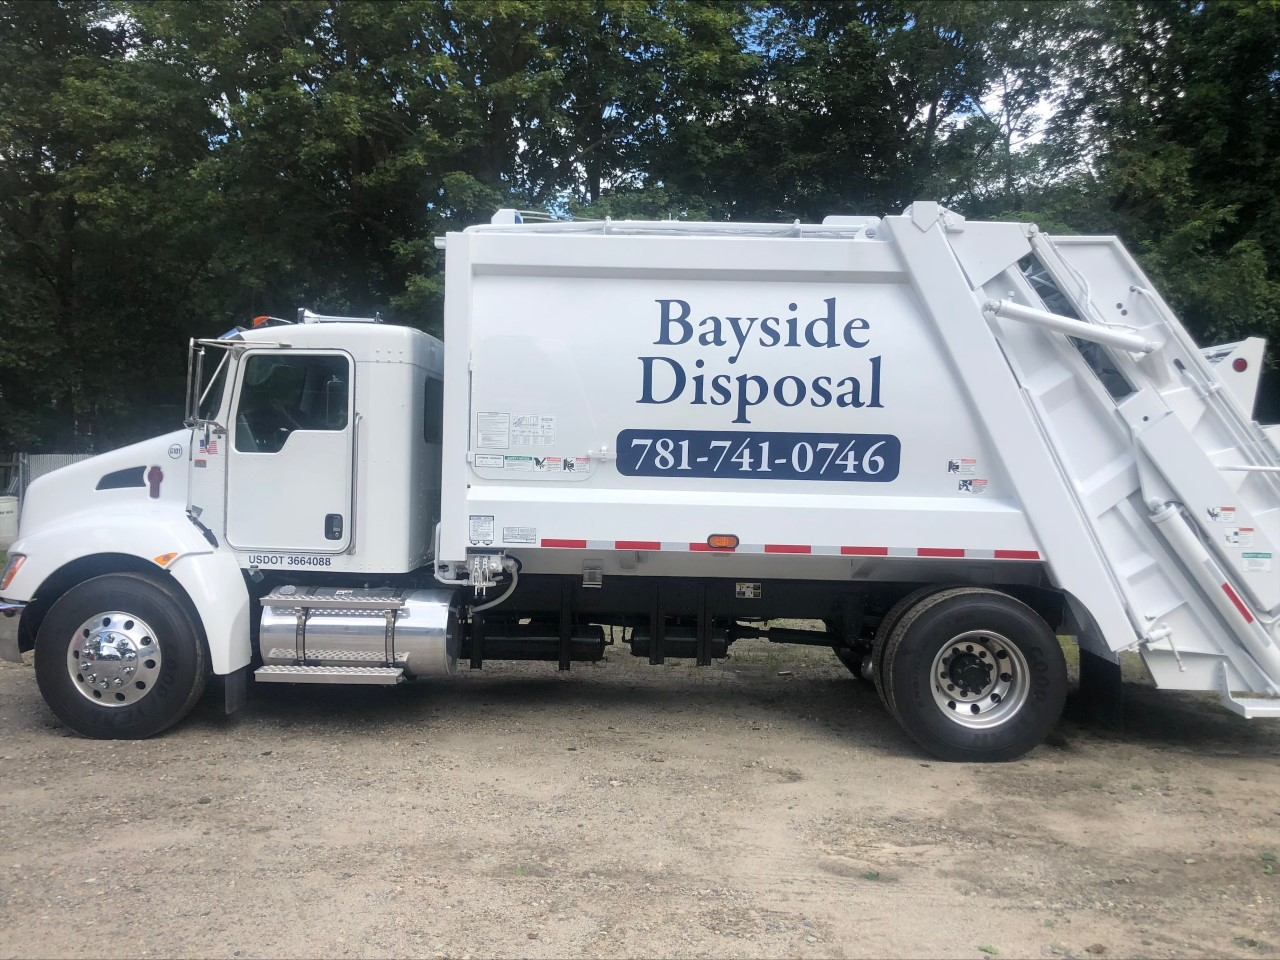 hull ma trash and recycling service truck white with blue lettering and phone number